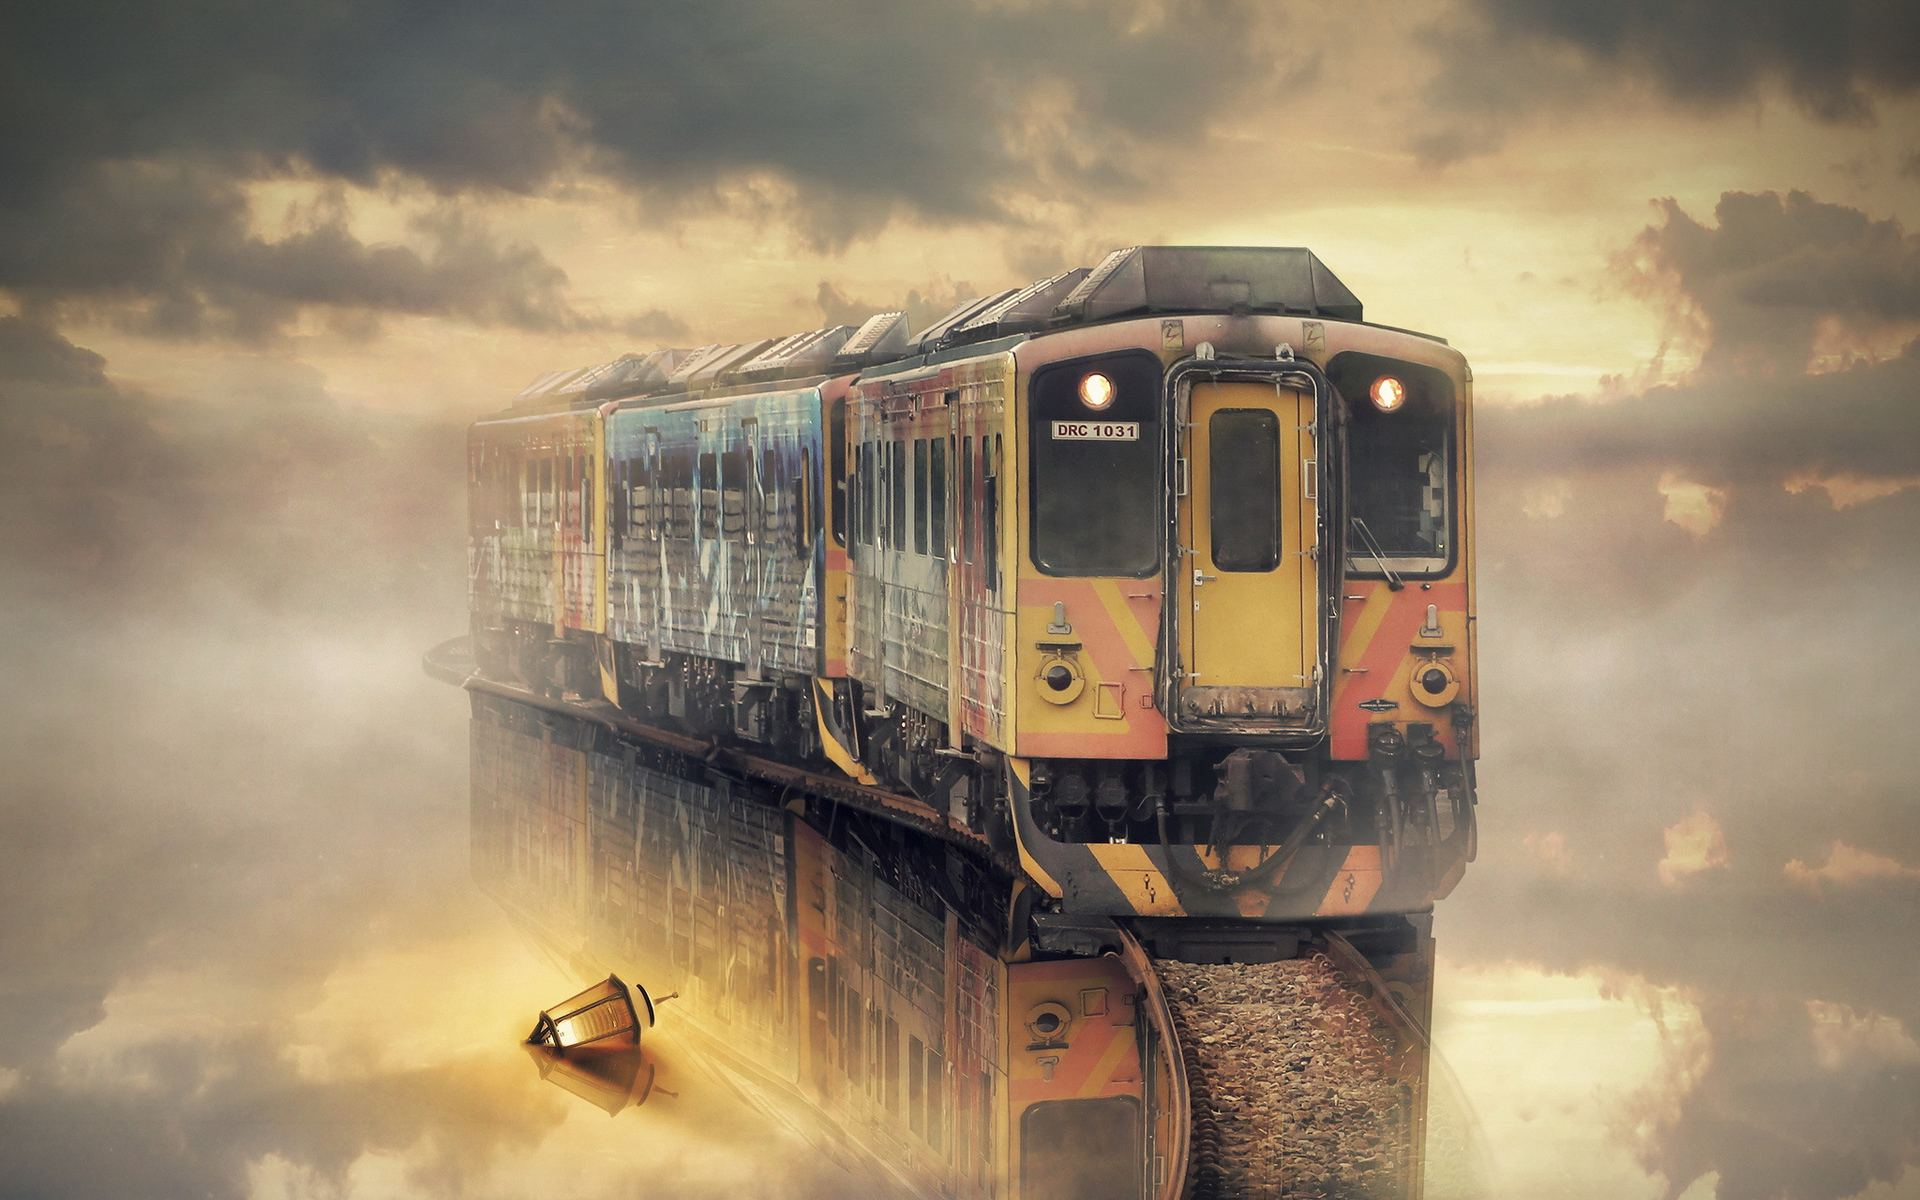 train dream meaning